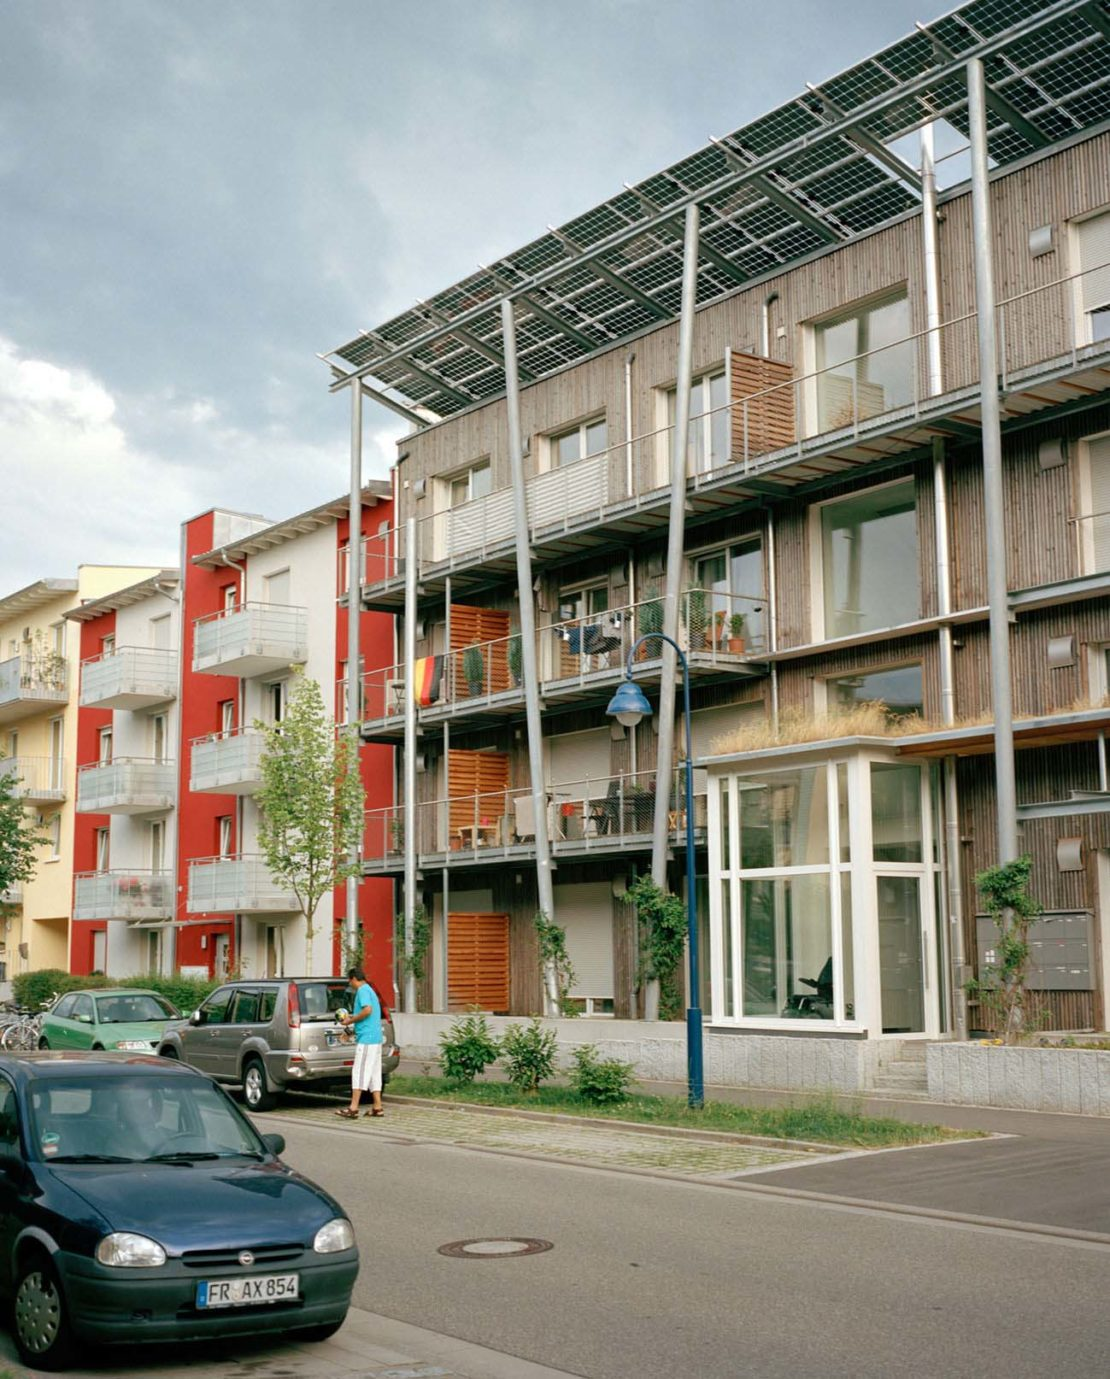 Housing in Rieselfeld